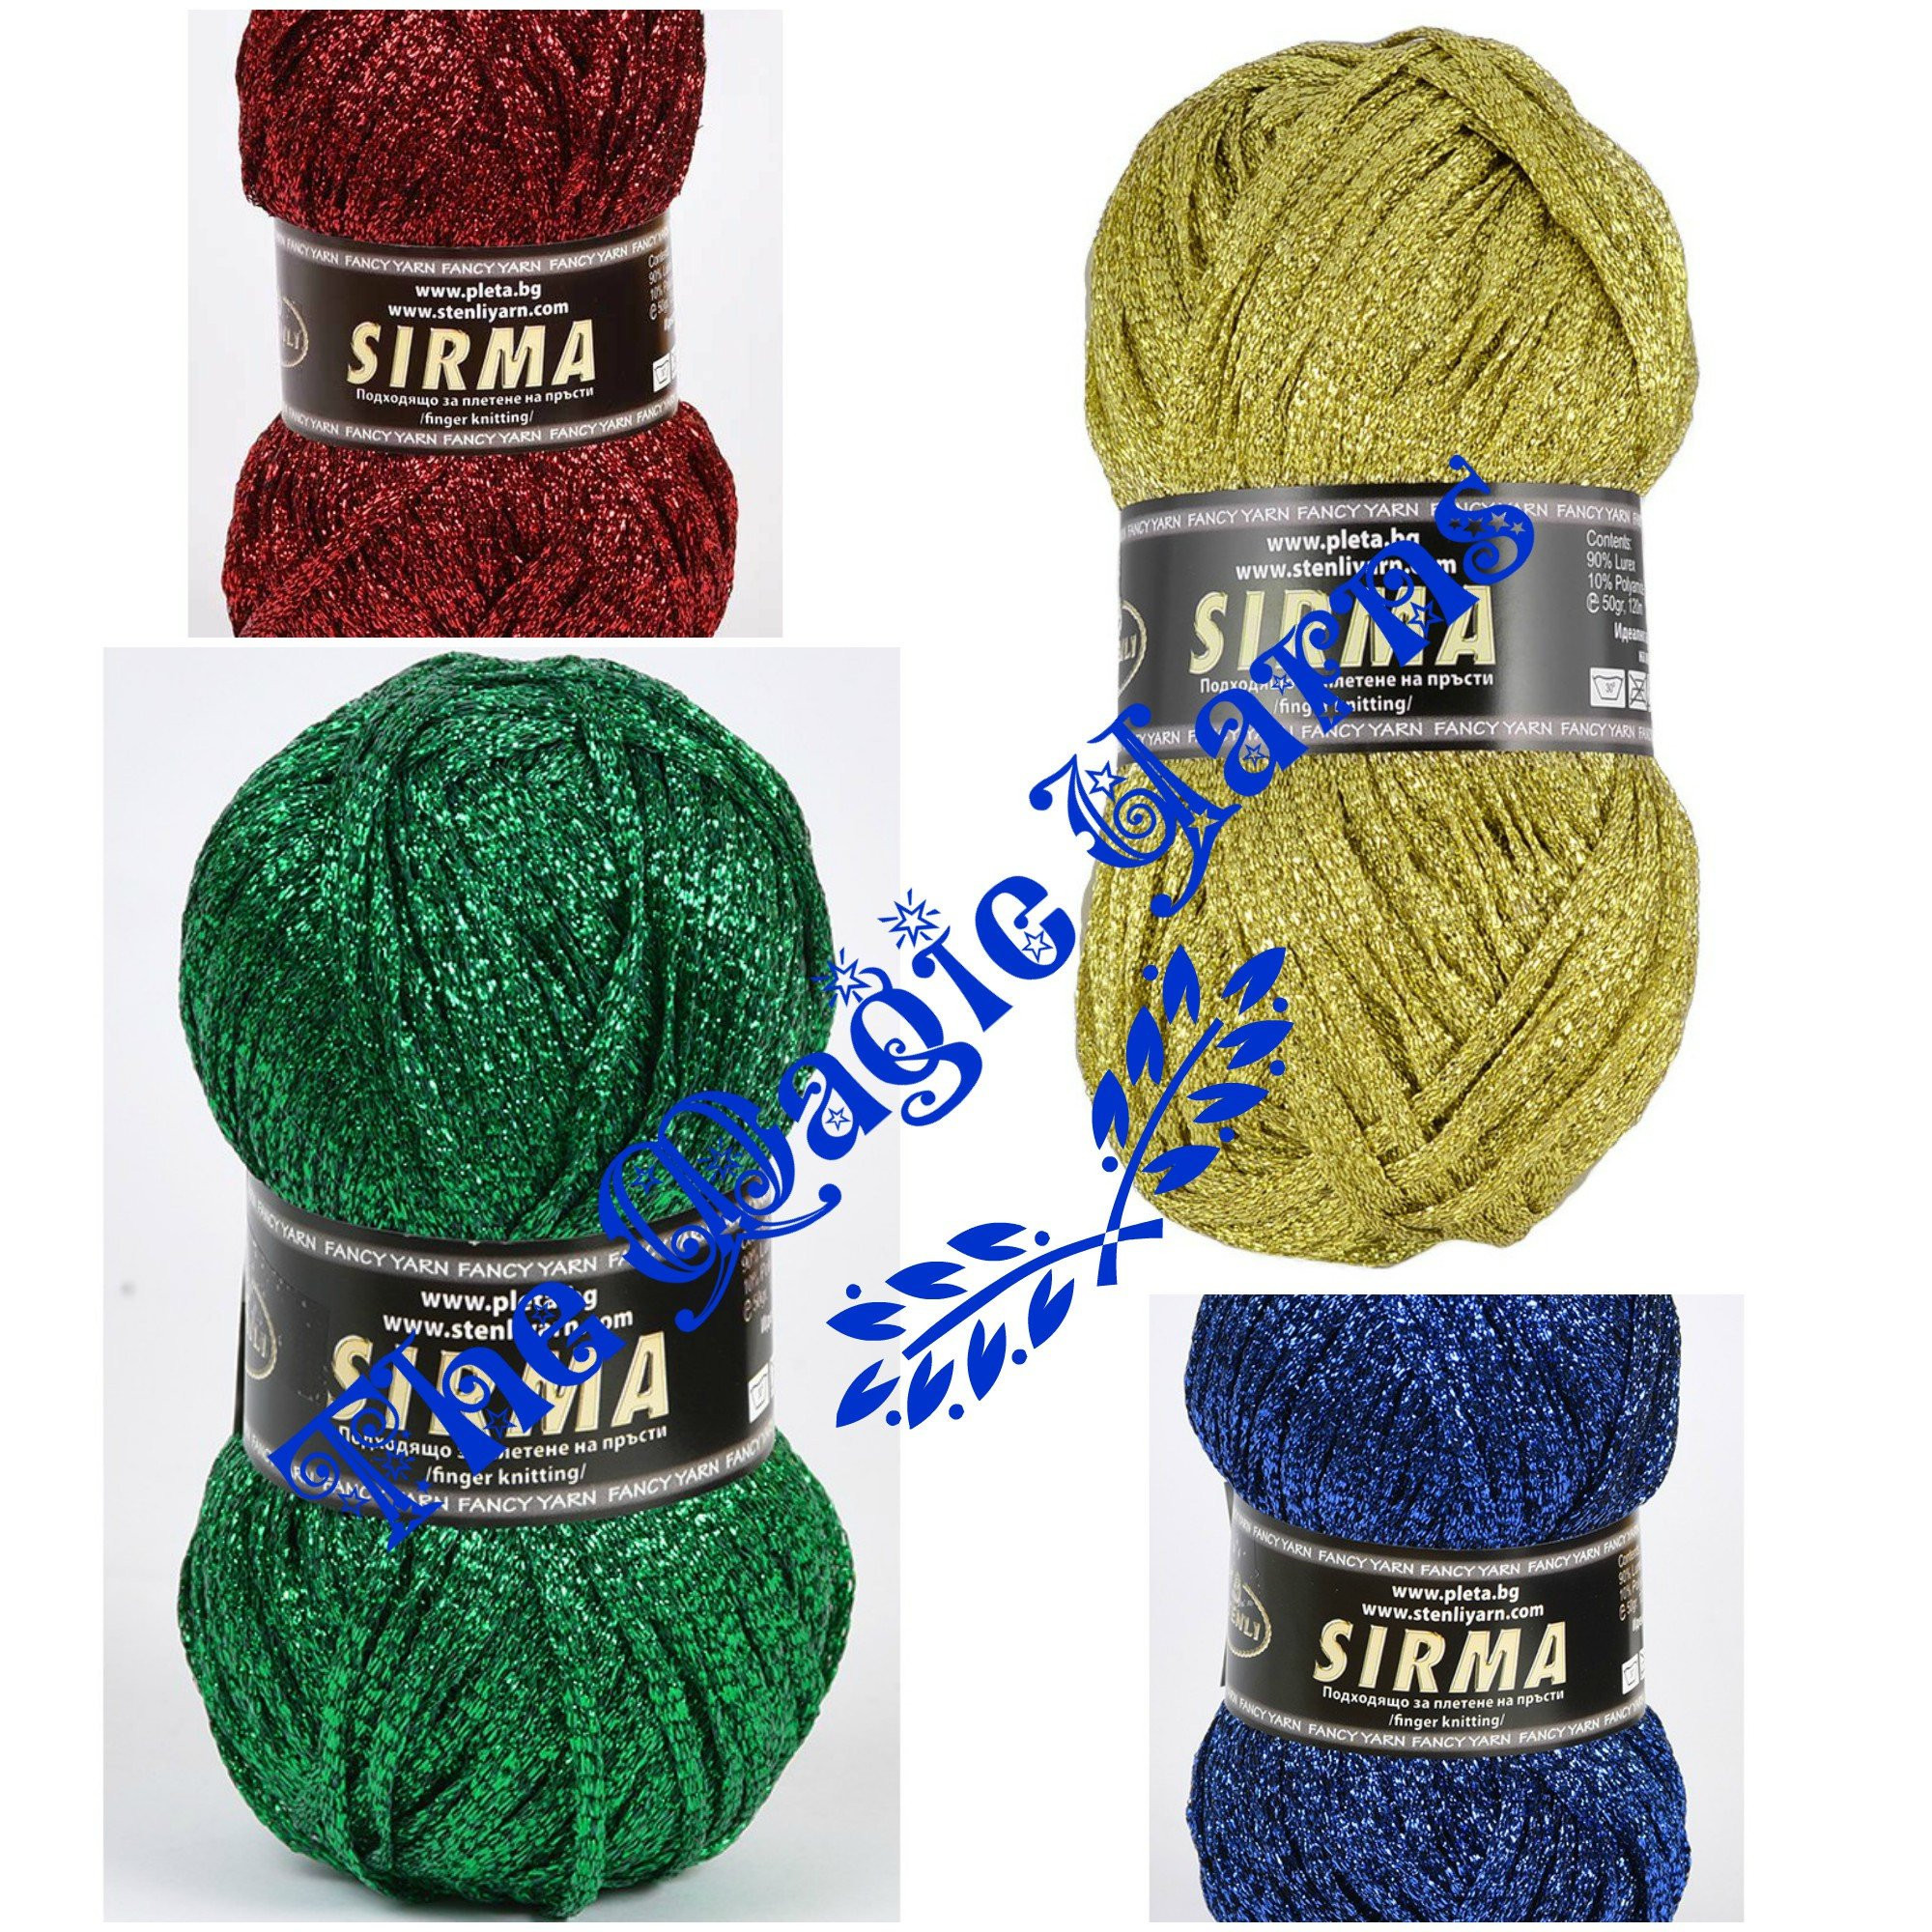 Yarn with Metallic Thread New Glitter Yarn Metalic Thread Yarnripe Yarn Lame Lurex Of Lovely 44 Pics Yarn with Metallic Thread